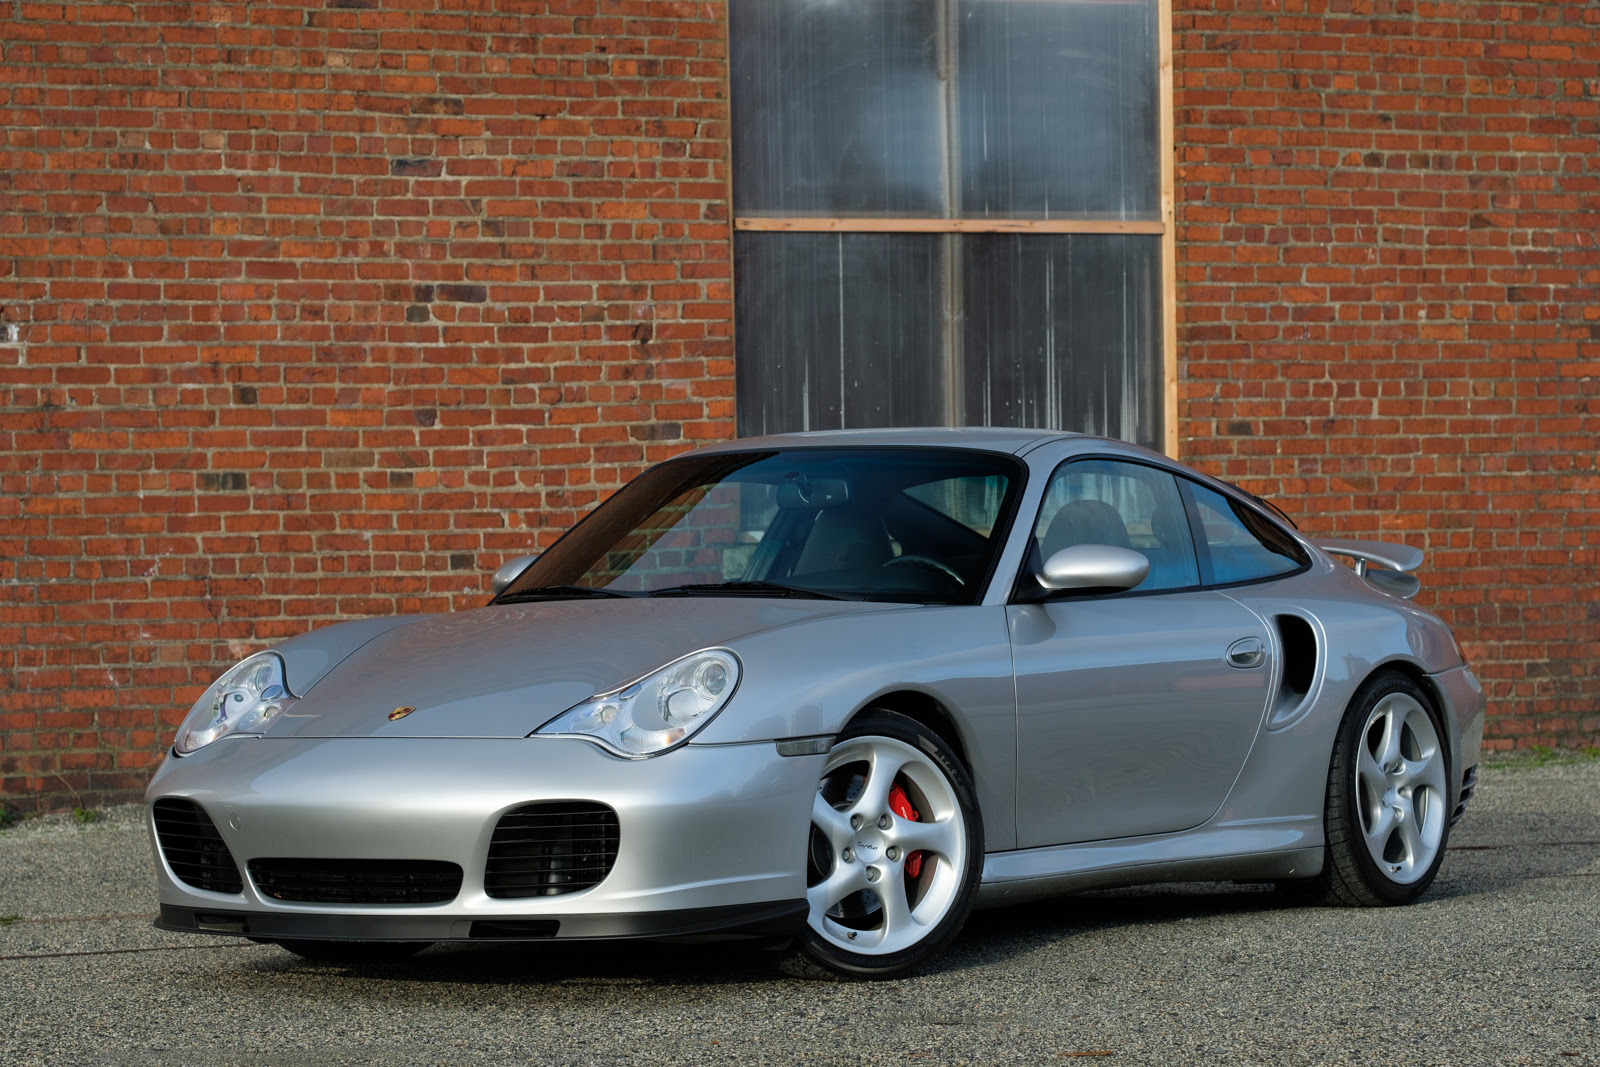 2001 Porsche 911 Turbo 996 Silver Arrow Cars Ltd